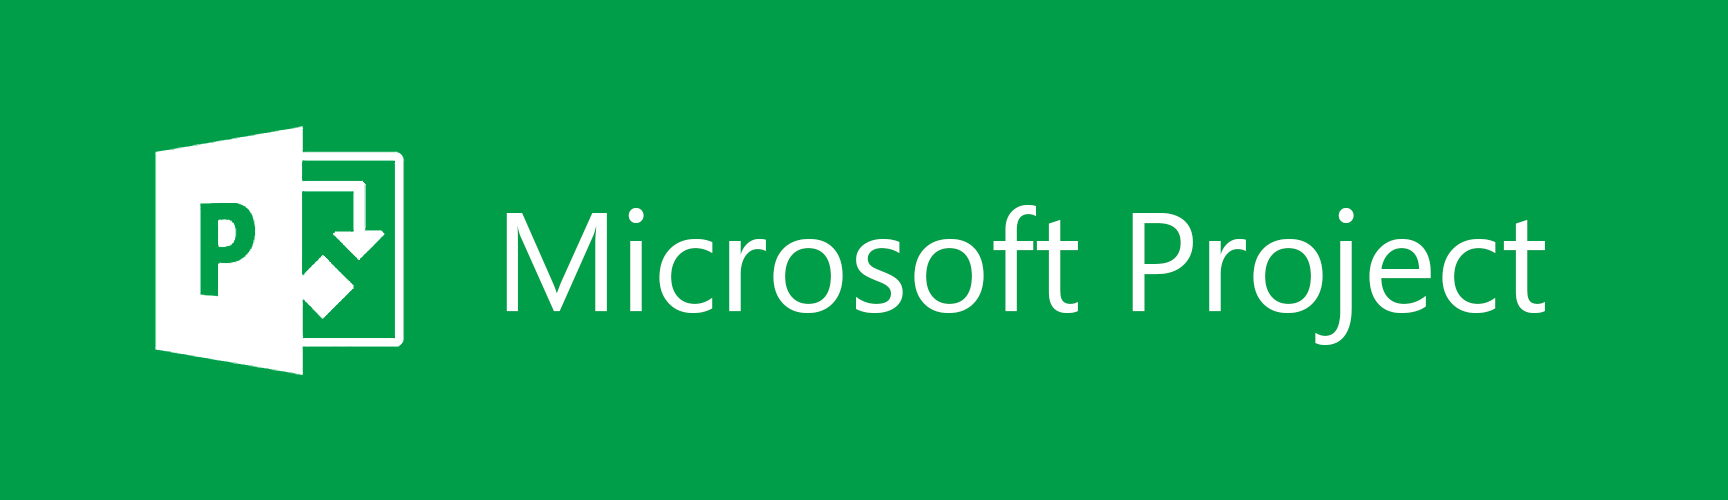 Microsoft Project Trusted Tech Team